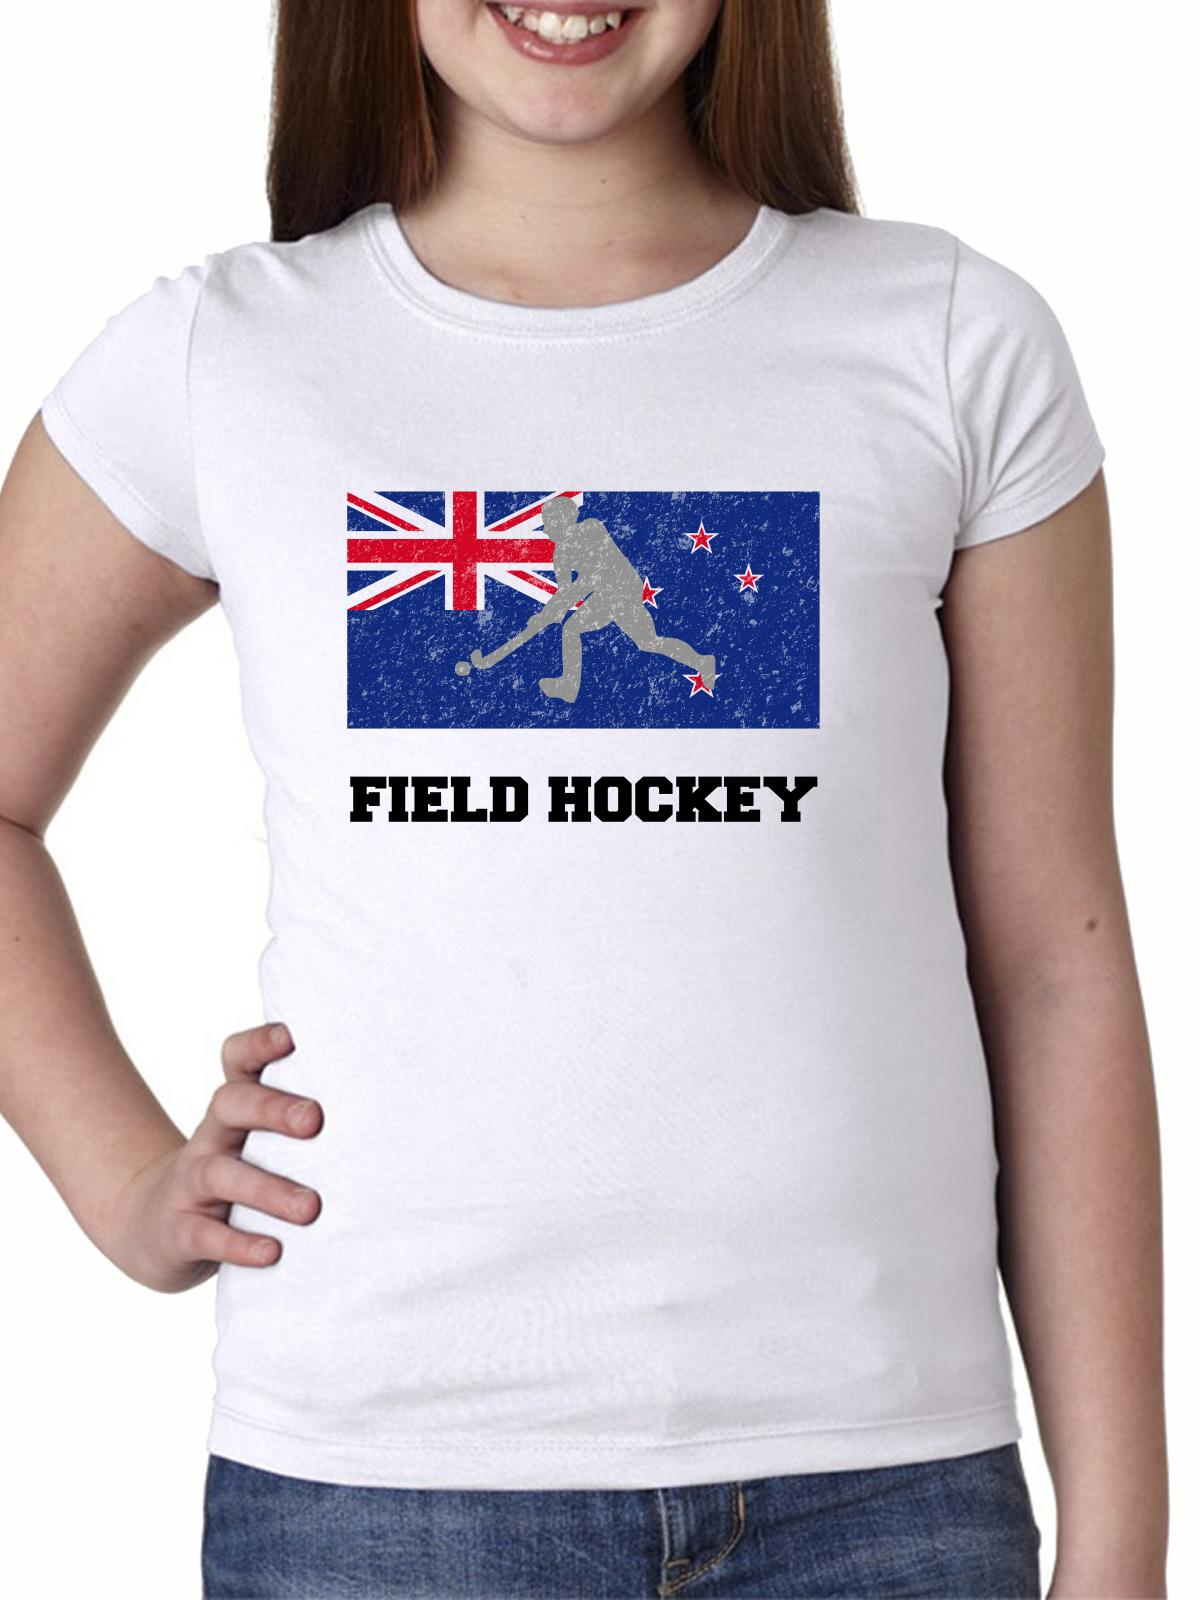 New Zealand Olympic Field Hockey Flag Silhouette Girl's Cotton Youth T-Shirt by Hollywood Thread